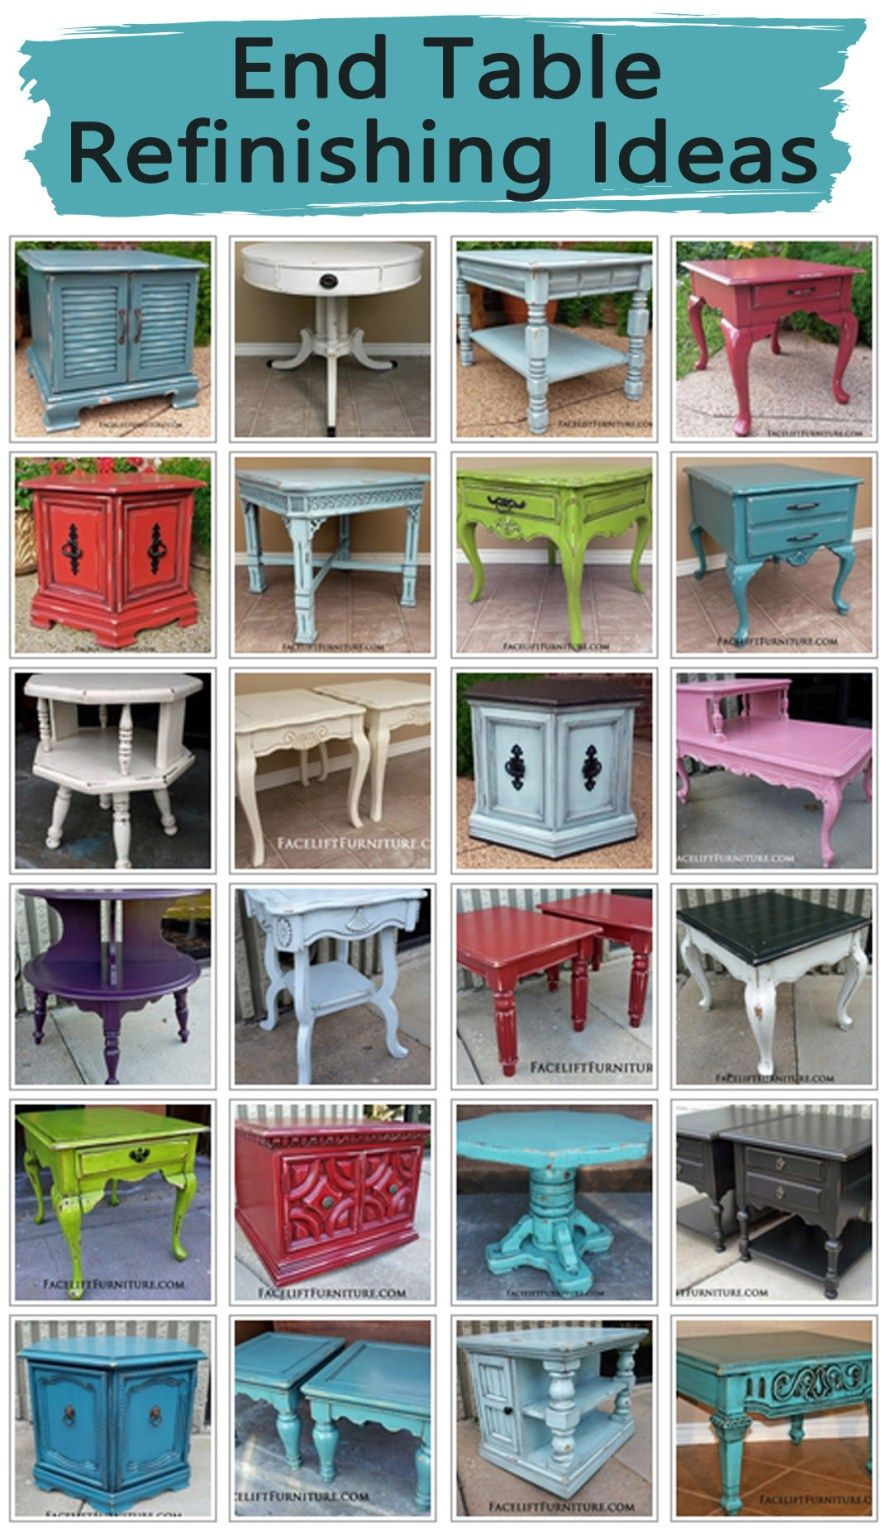 end table refinishing ideas furniture distressed tables diy are great way introduce the upstyled look painted glazed and into your home learn more from facelift shaker cherry